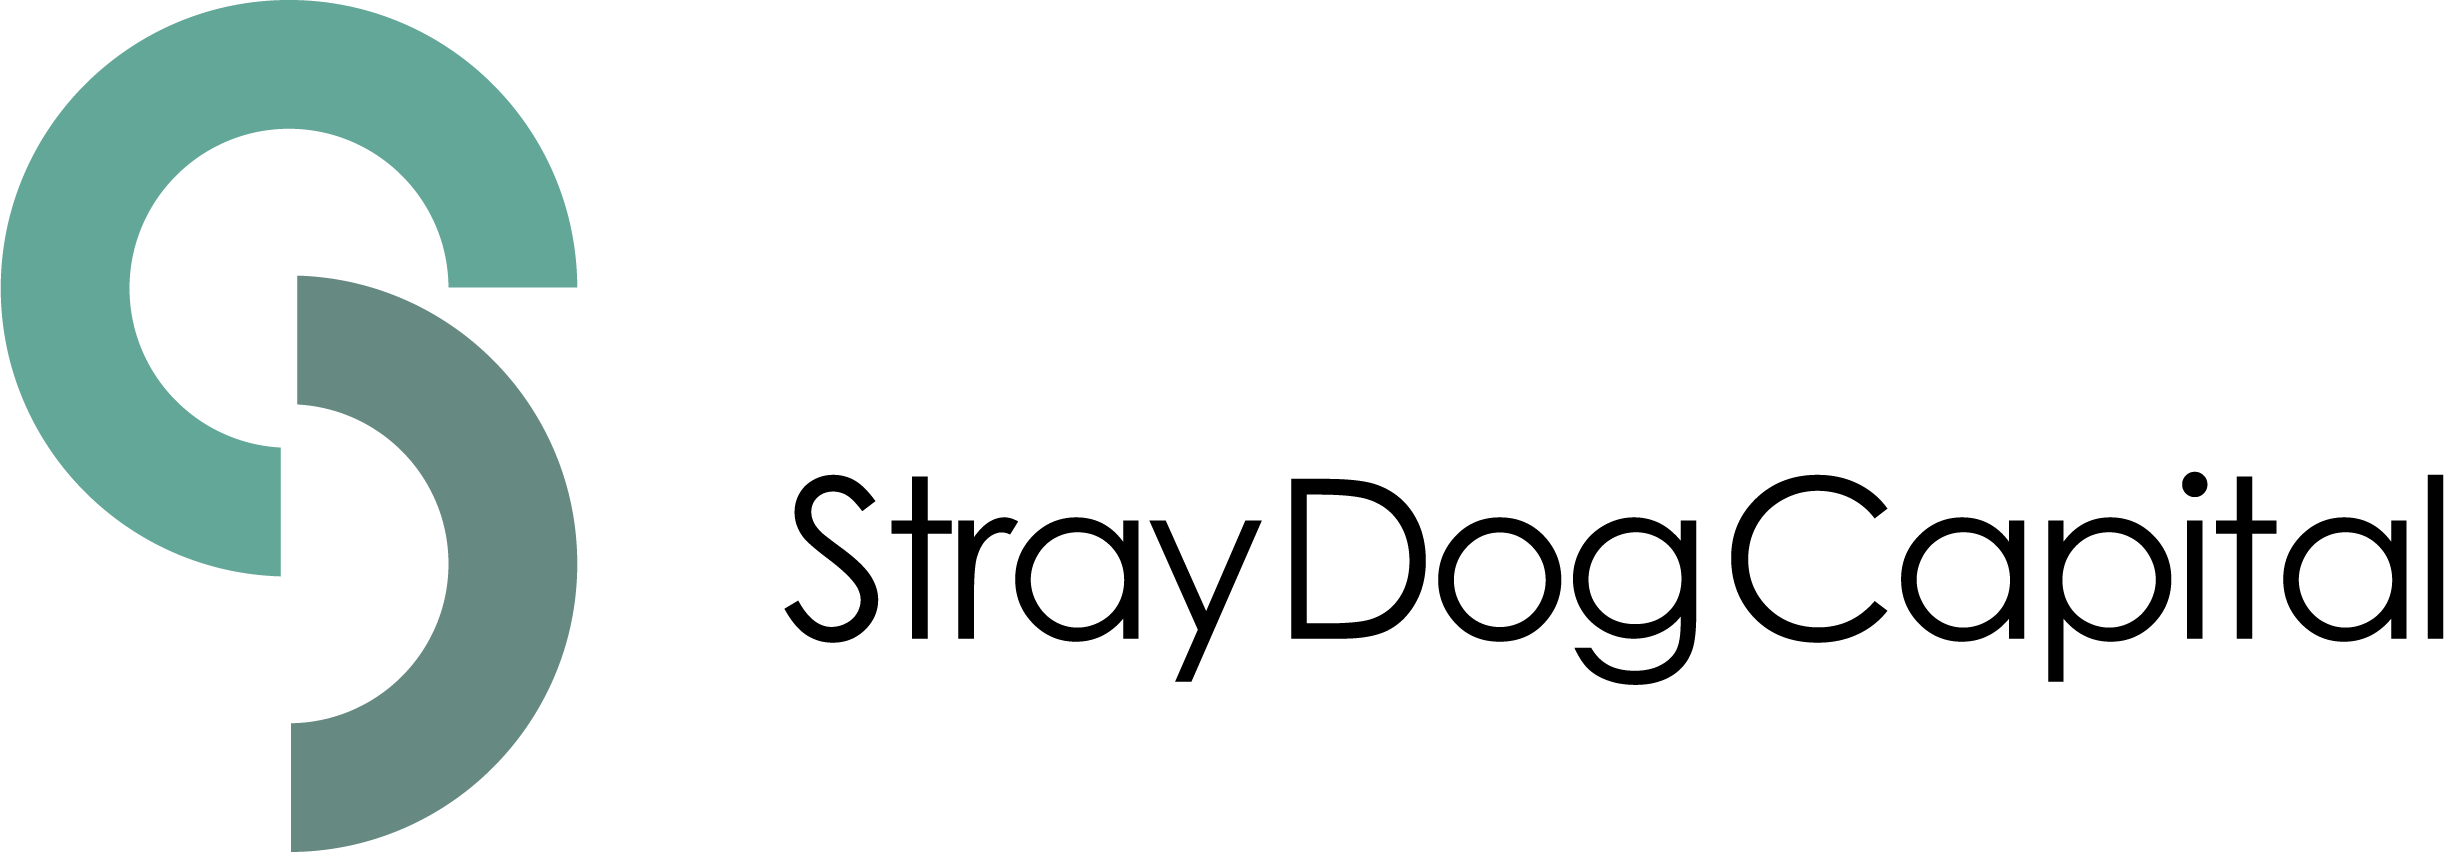 Stray_Dog_Capital_logo001.png